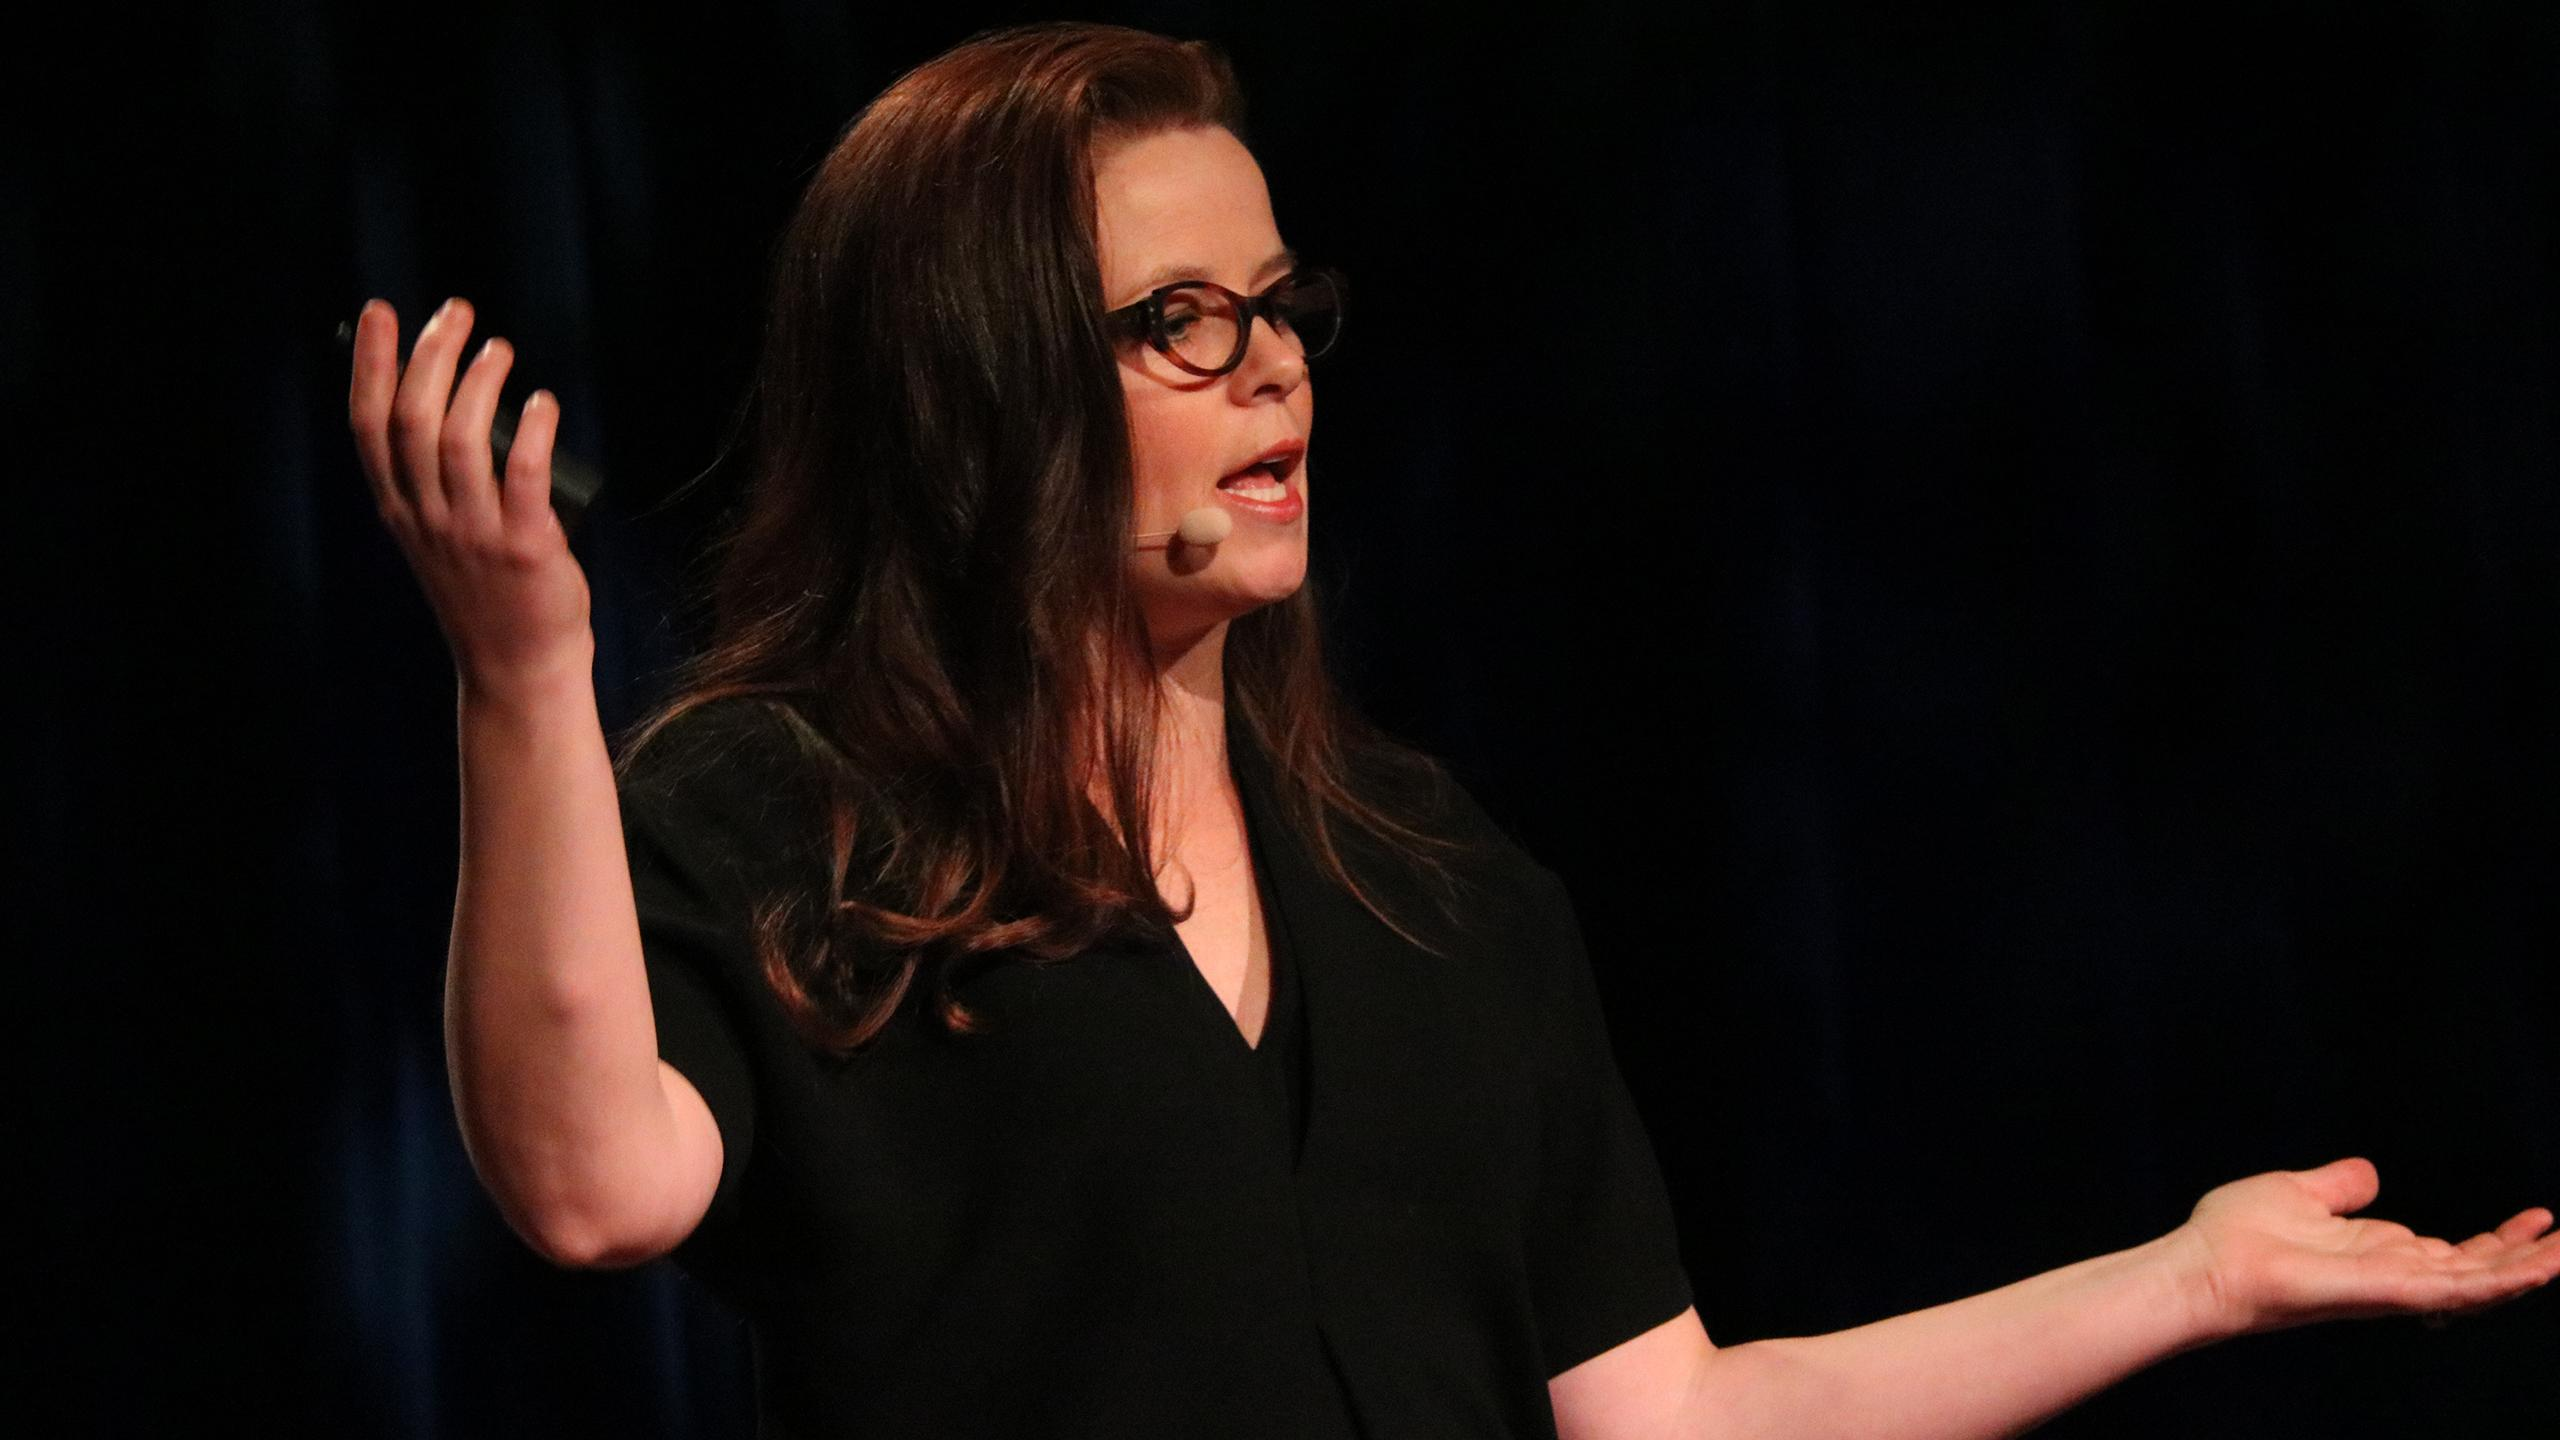 Shelagh McCartney speaks on a stage, her arms outstretched.